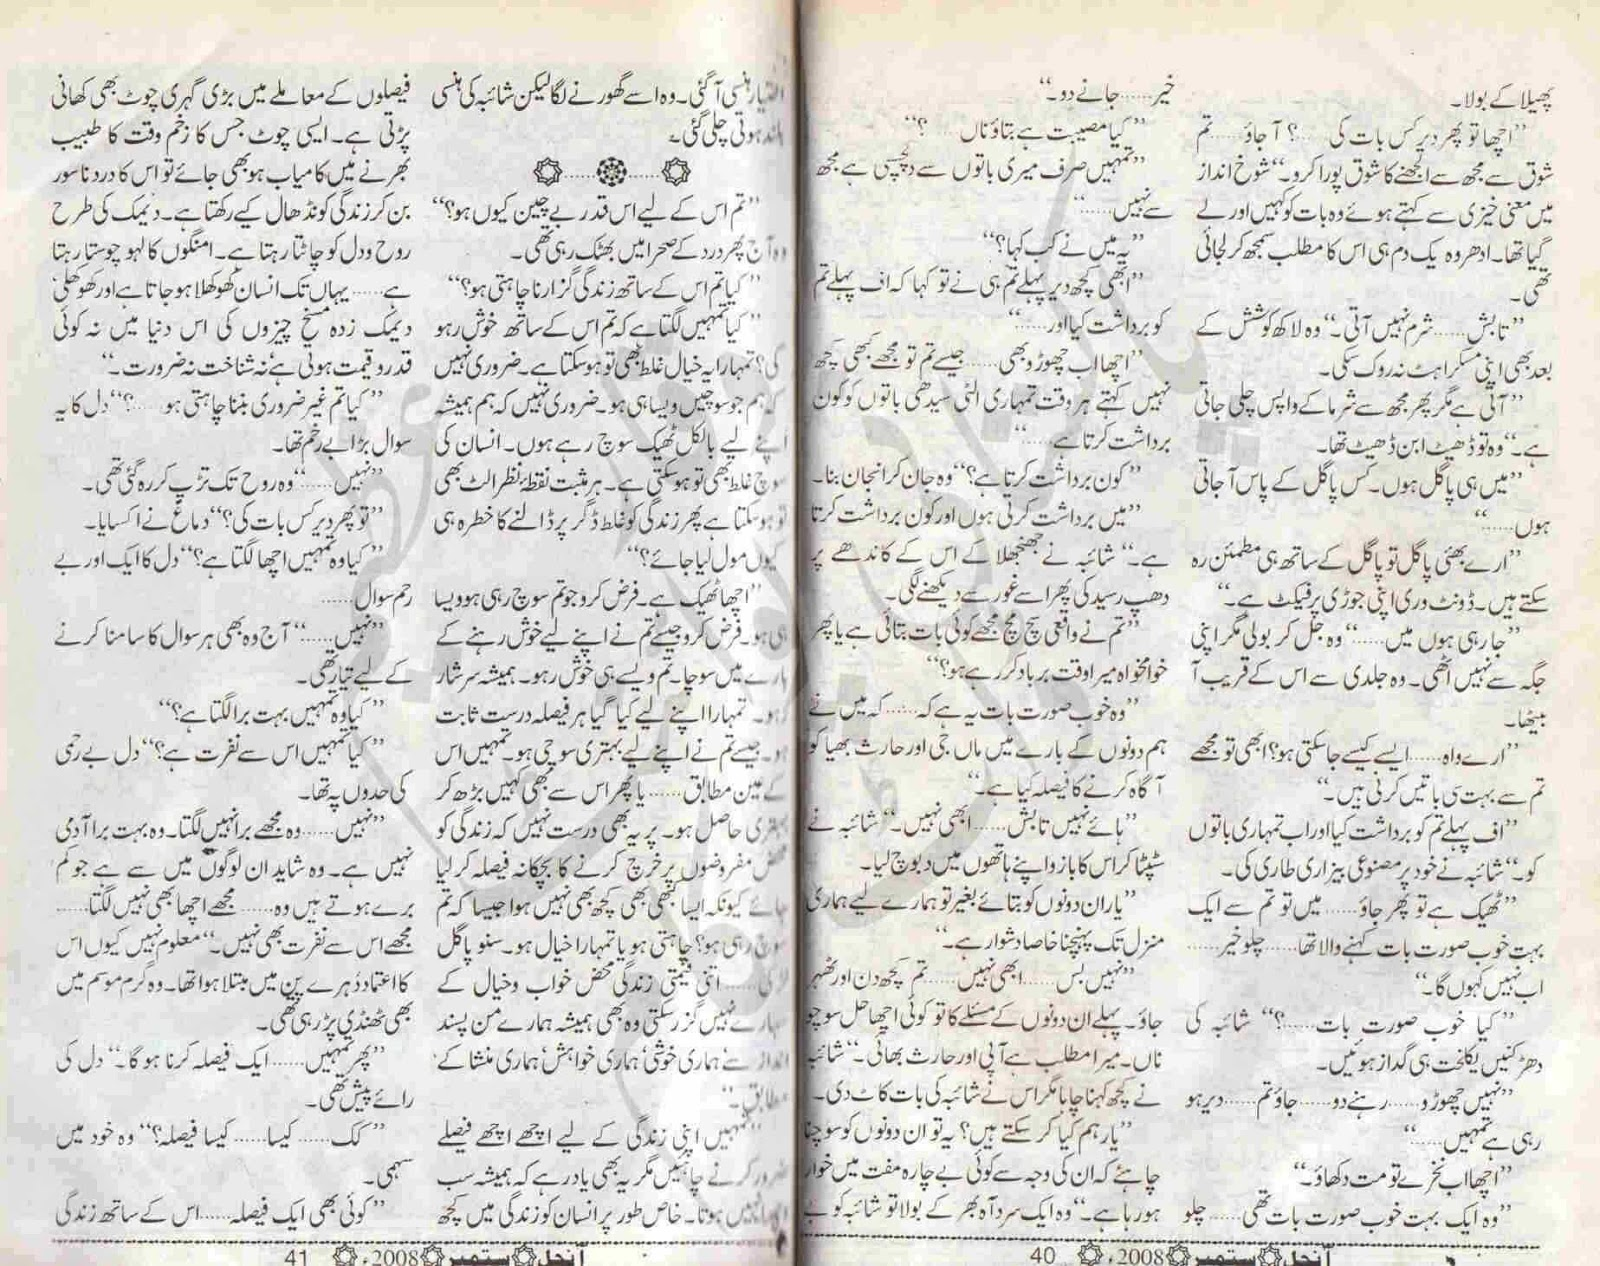 Kitab dost pyar amar hota hai novel by syeda gul bano for Syeda gul bano novels